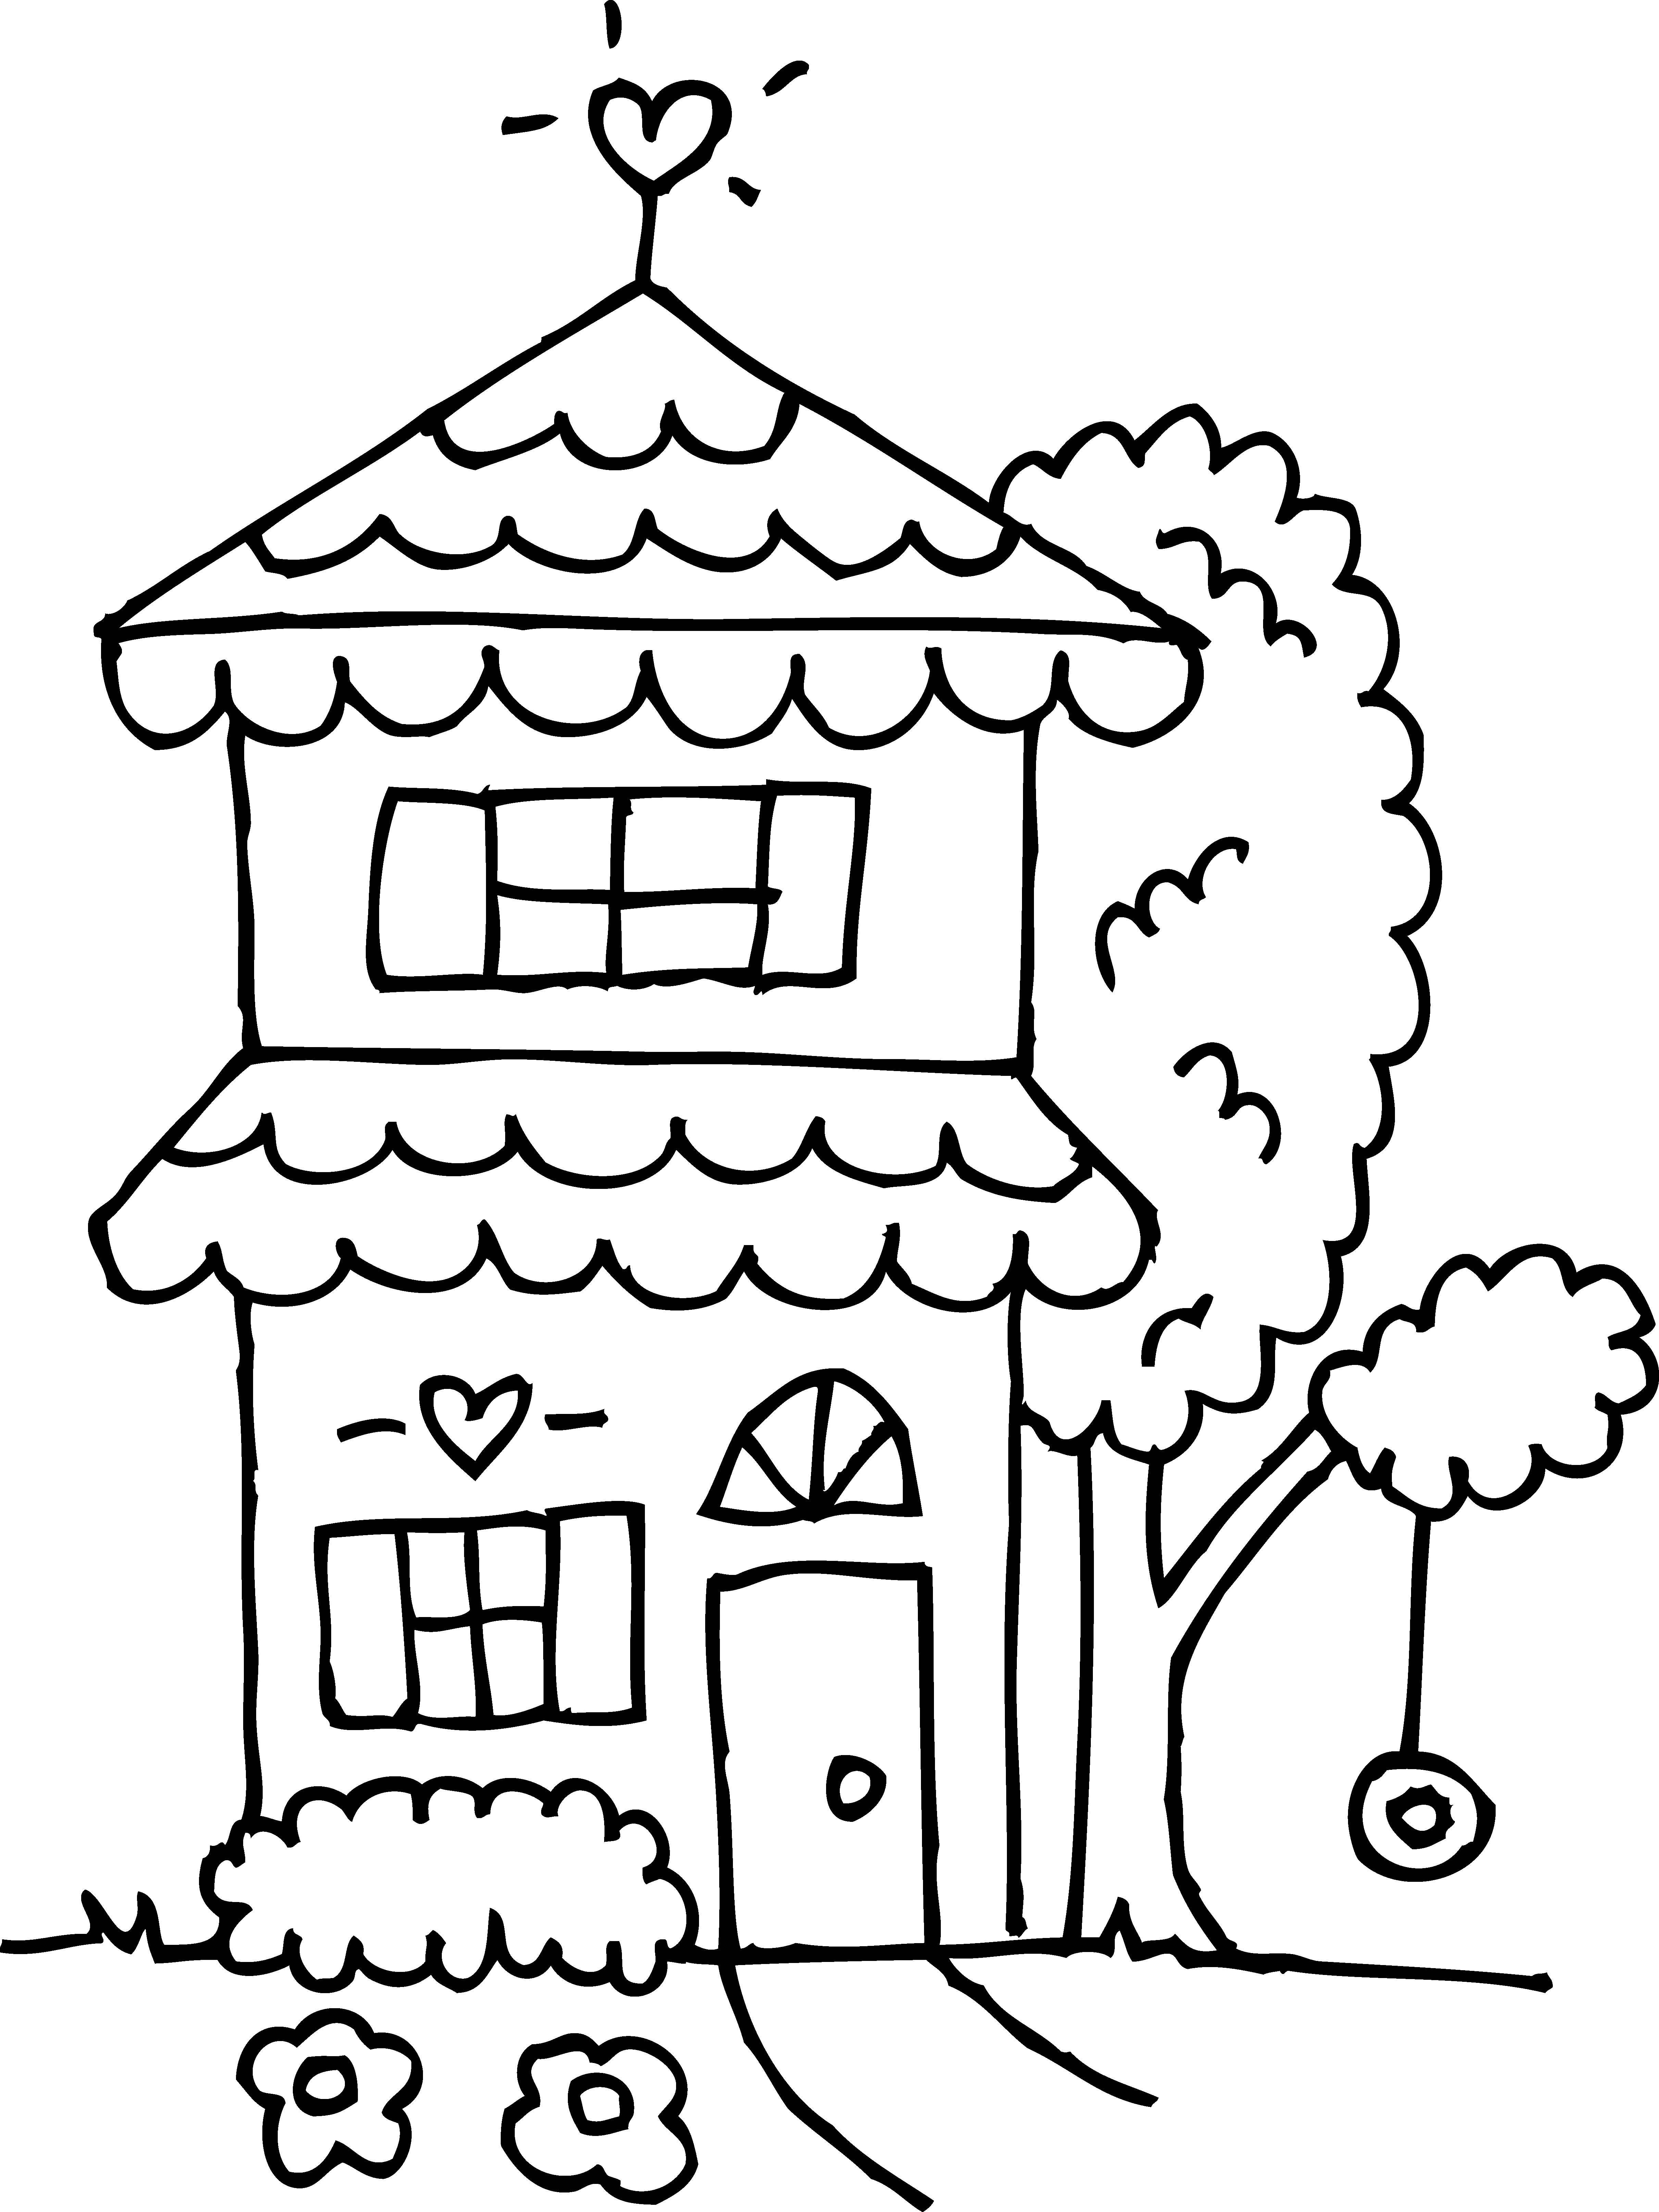 Coloring clipart black and white 1 » Clipart Station.